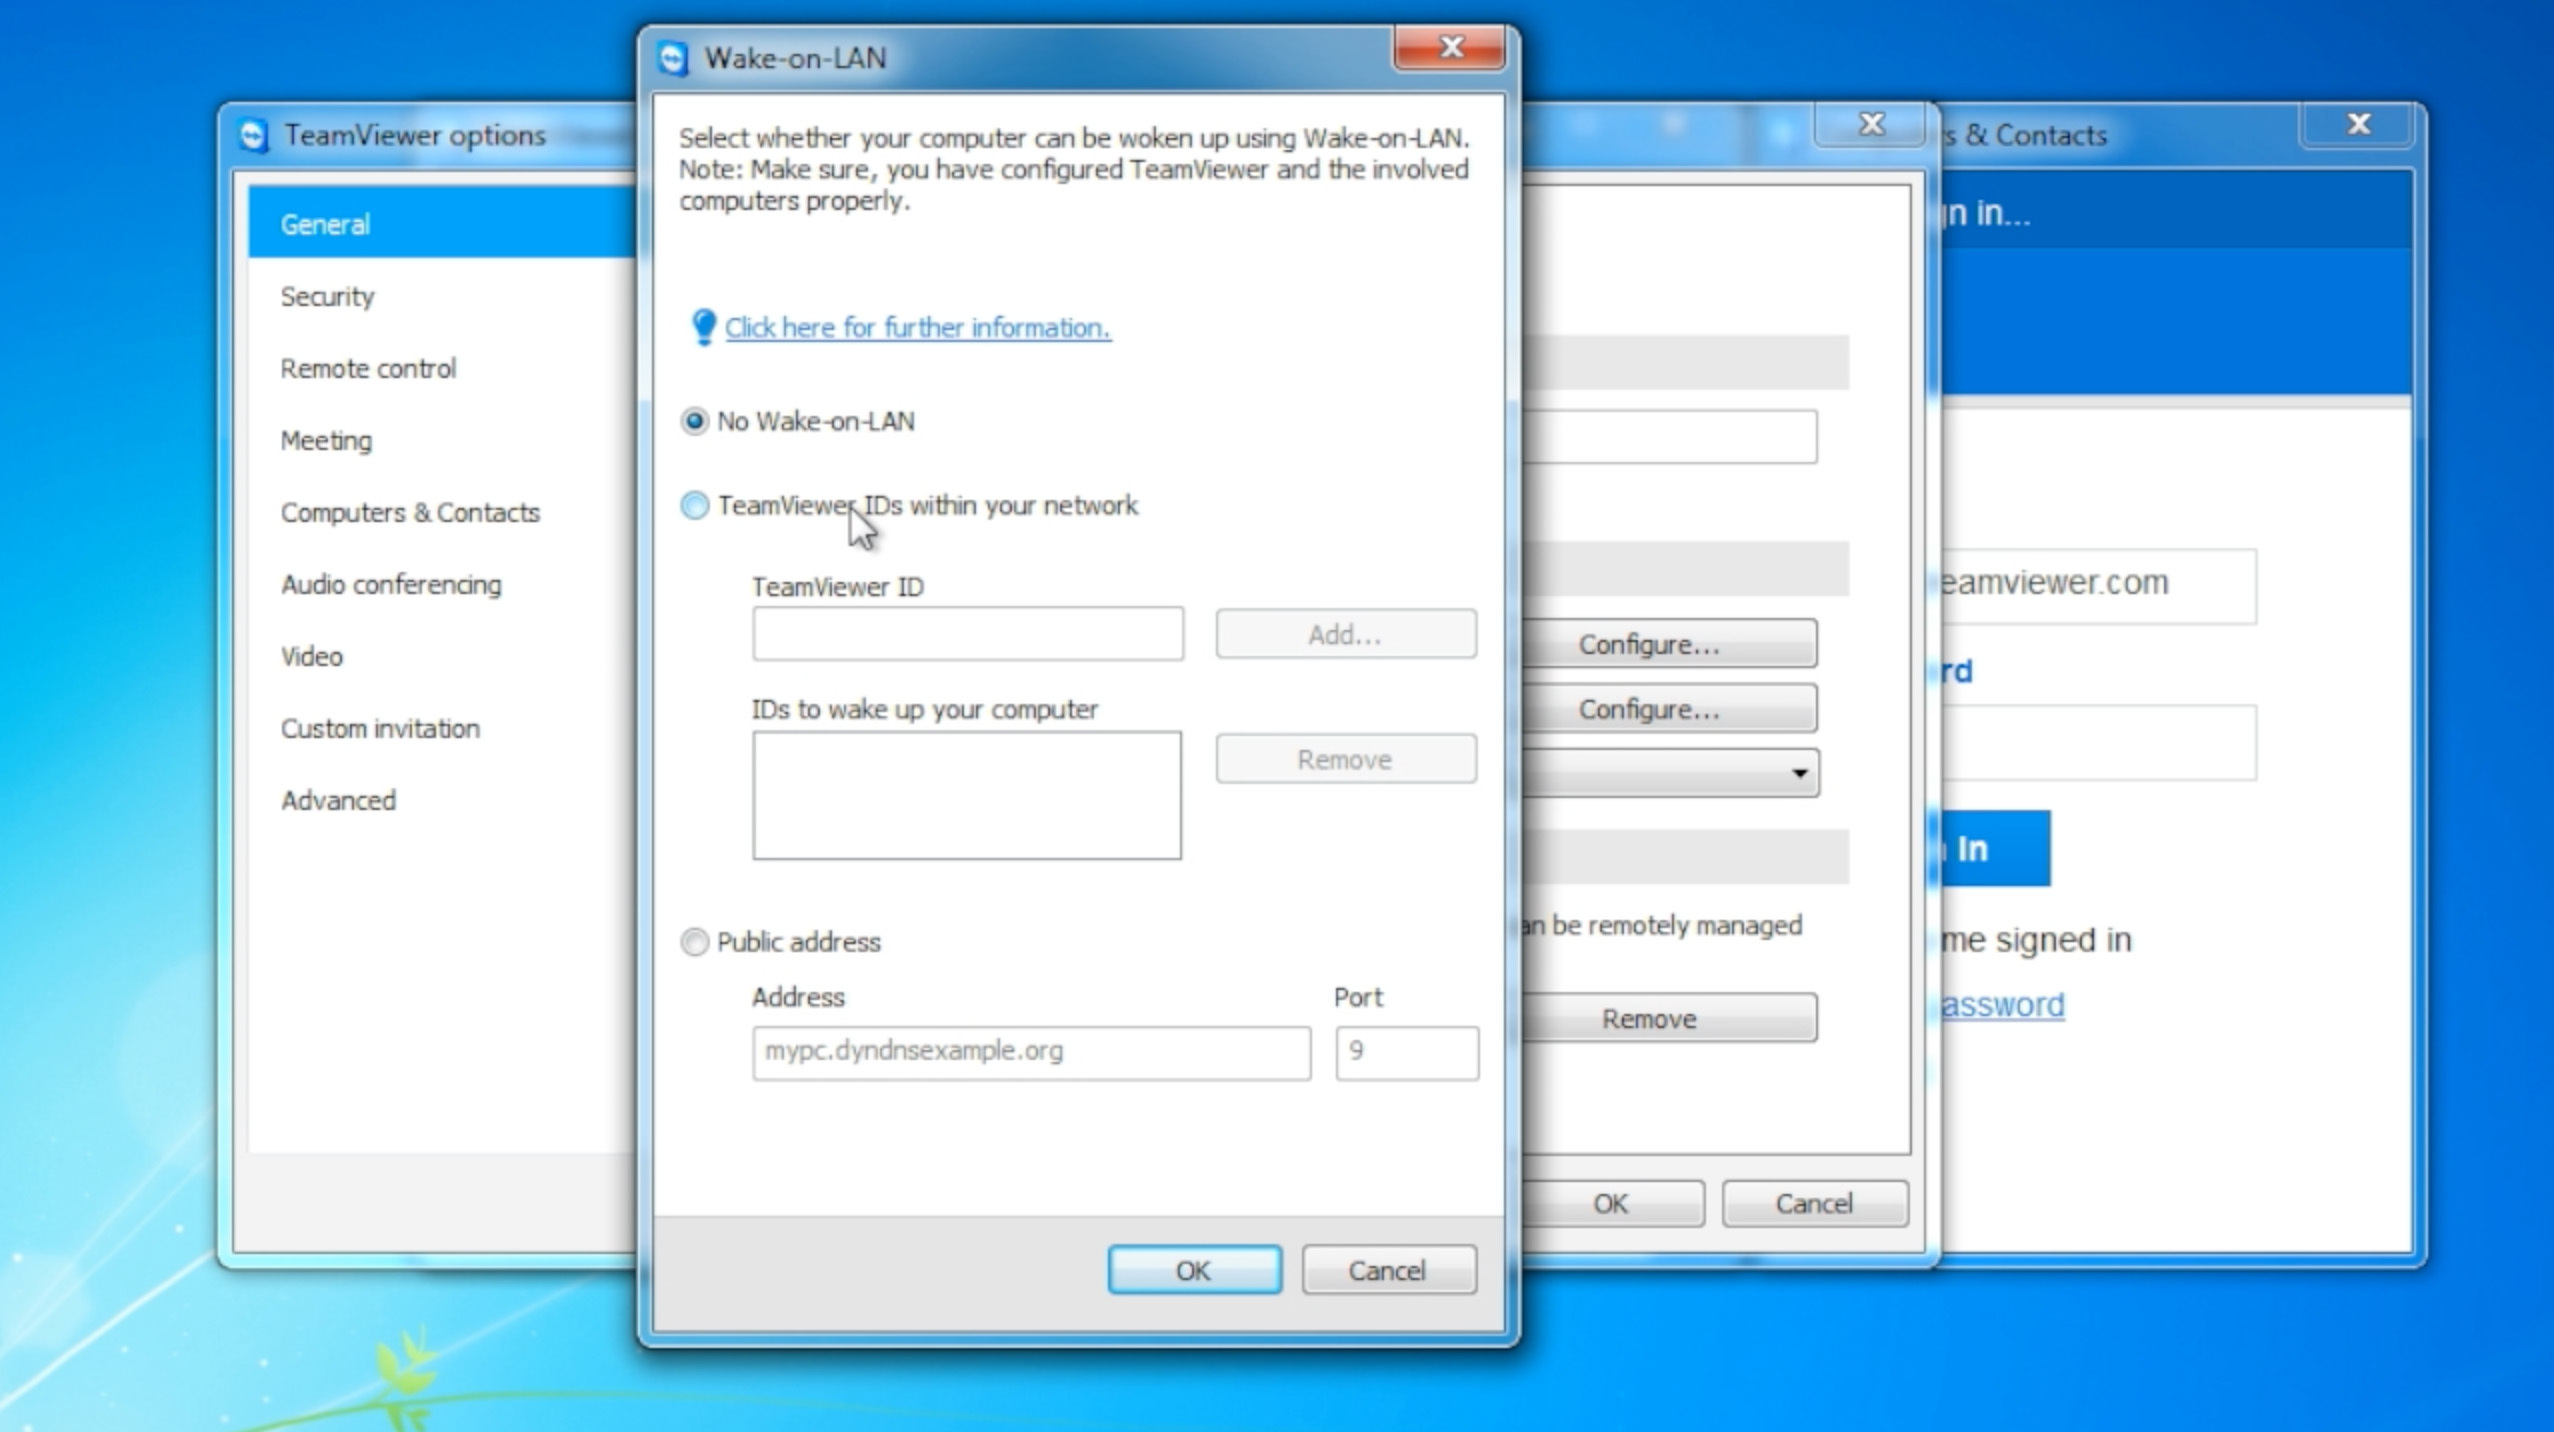 TeamViewer 9 Features: Wake-on-LAN Setup